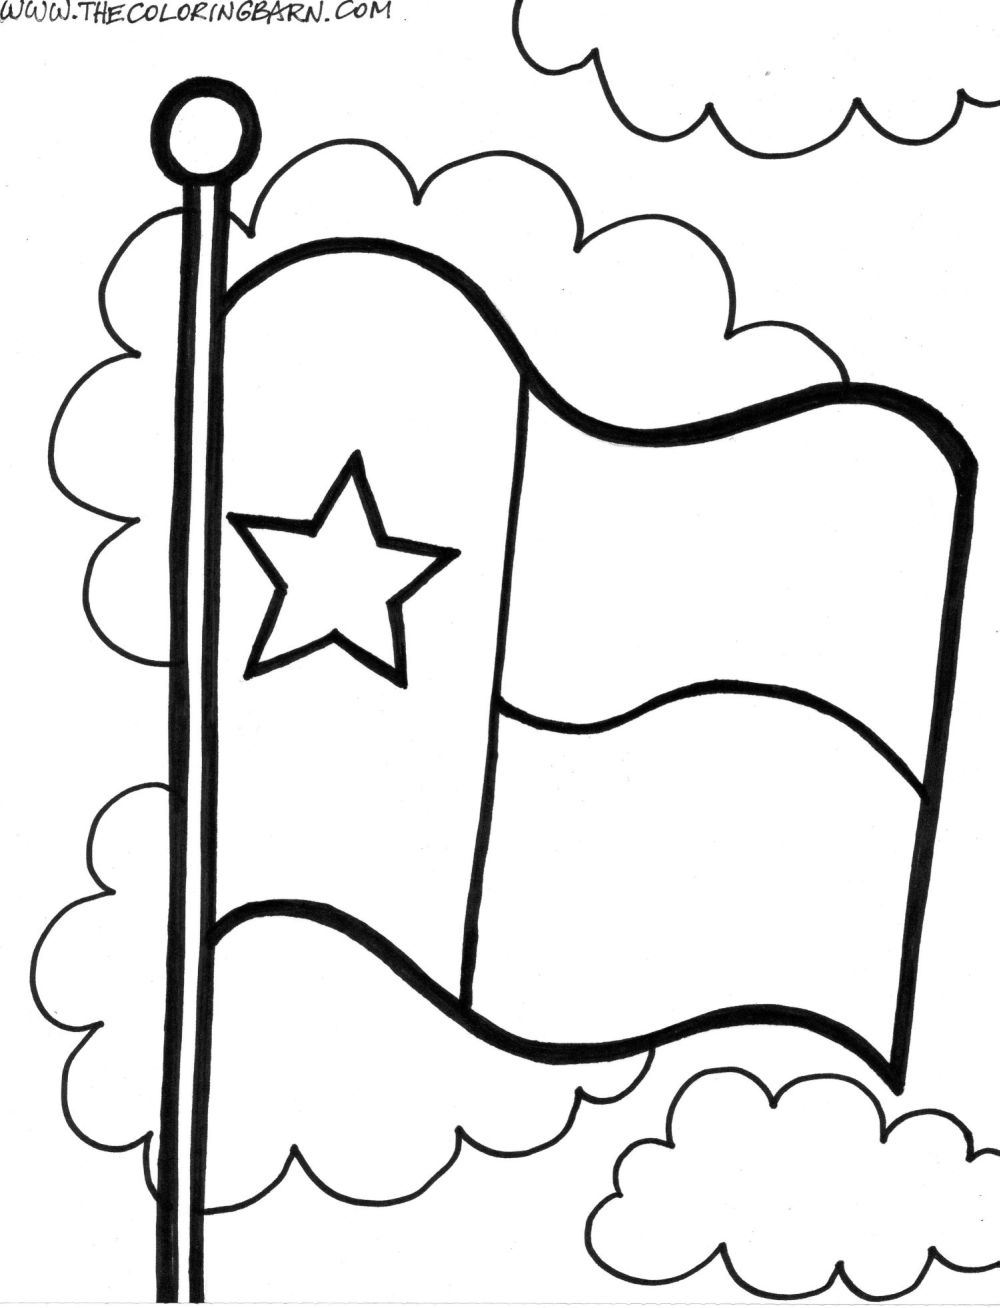 Texas coloring pages coloring home for State of texas symbols coloring pages